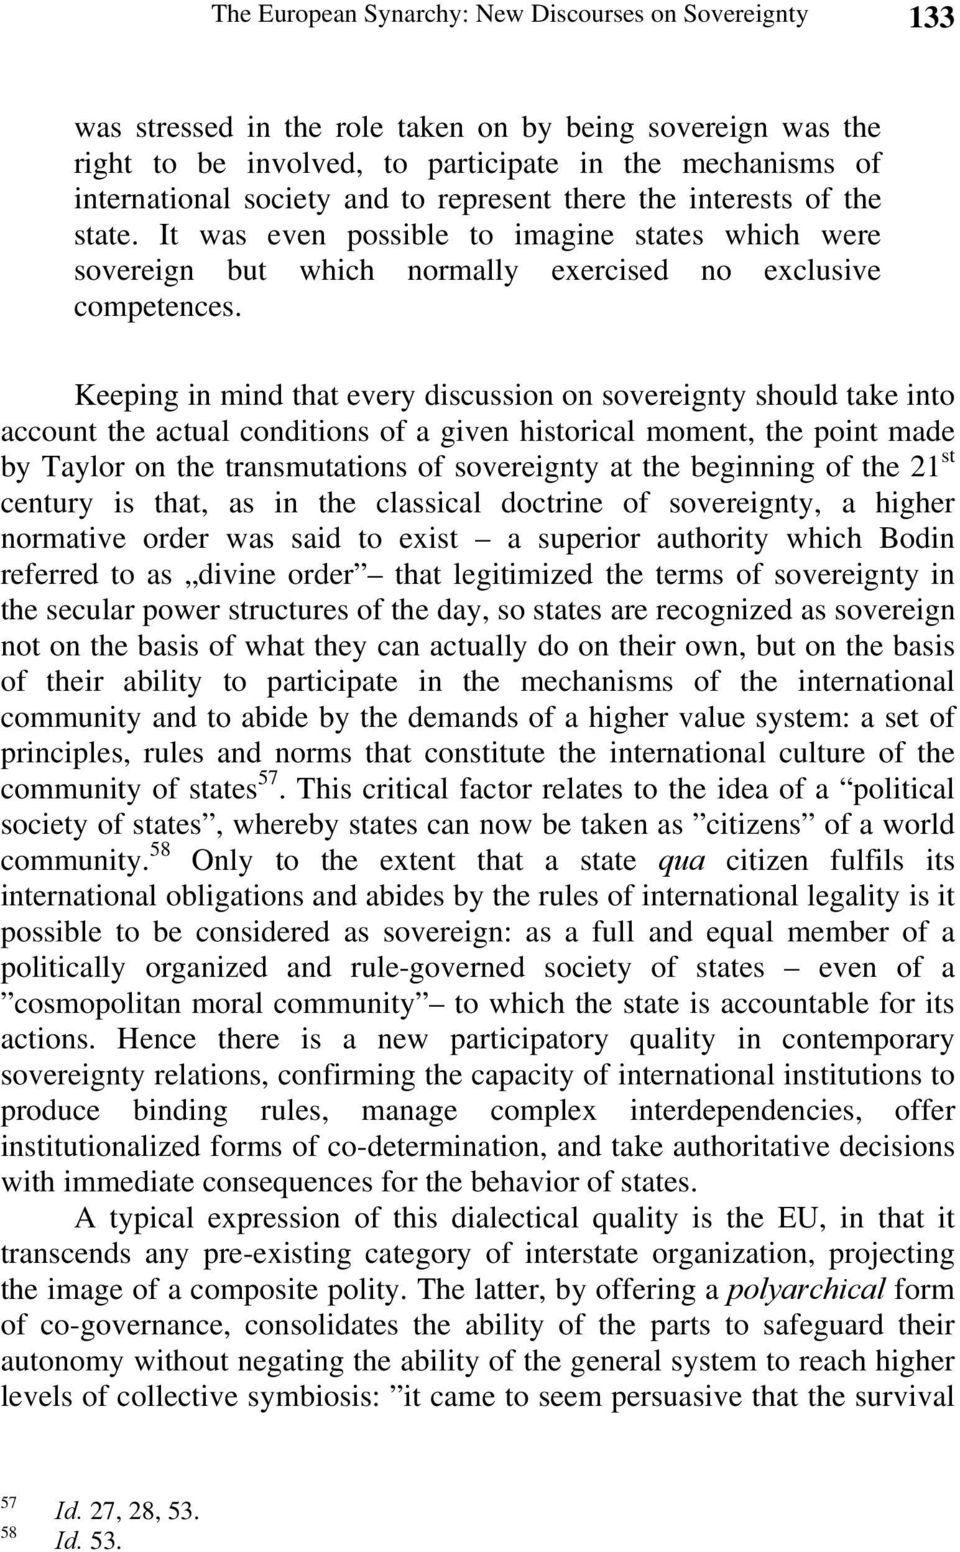 Keeping in mind that every discussion on sovereignty should take into account the actual conditions of a given historical moment, the point made by Taylor on the transmutations of sovereignty at the